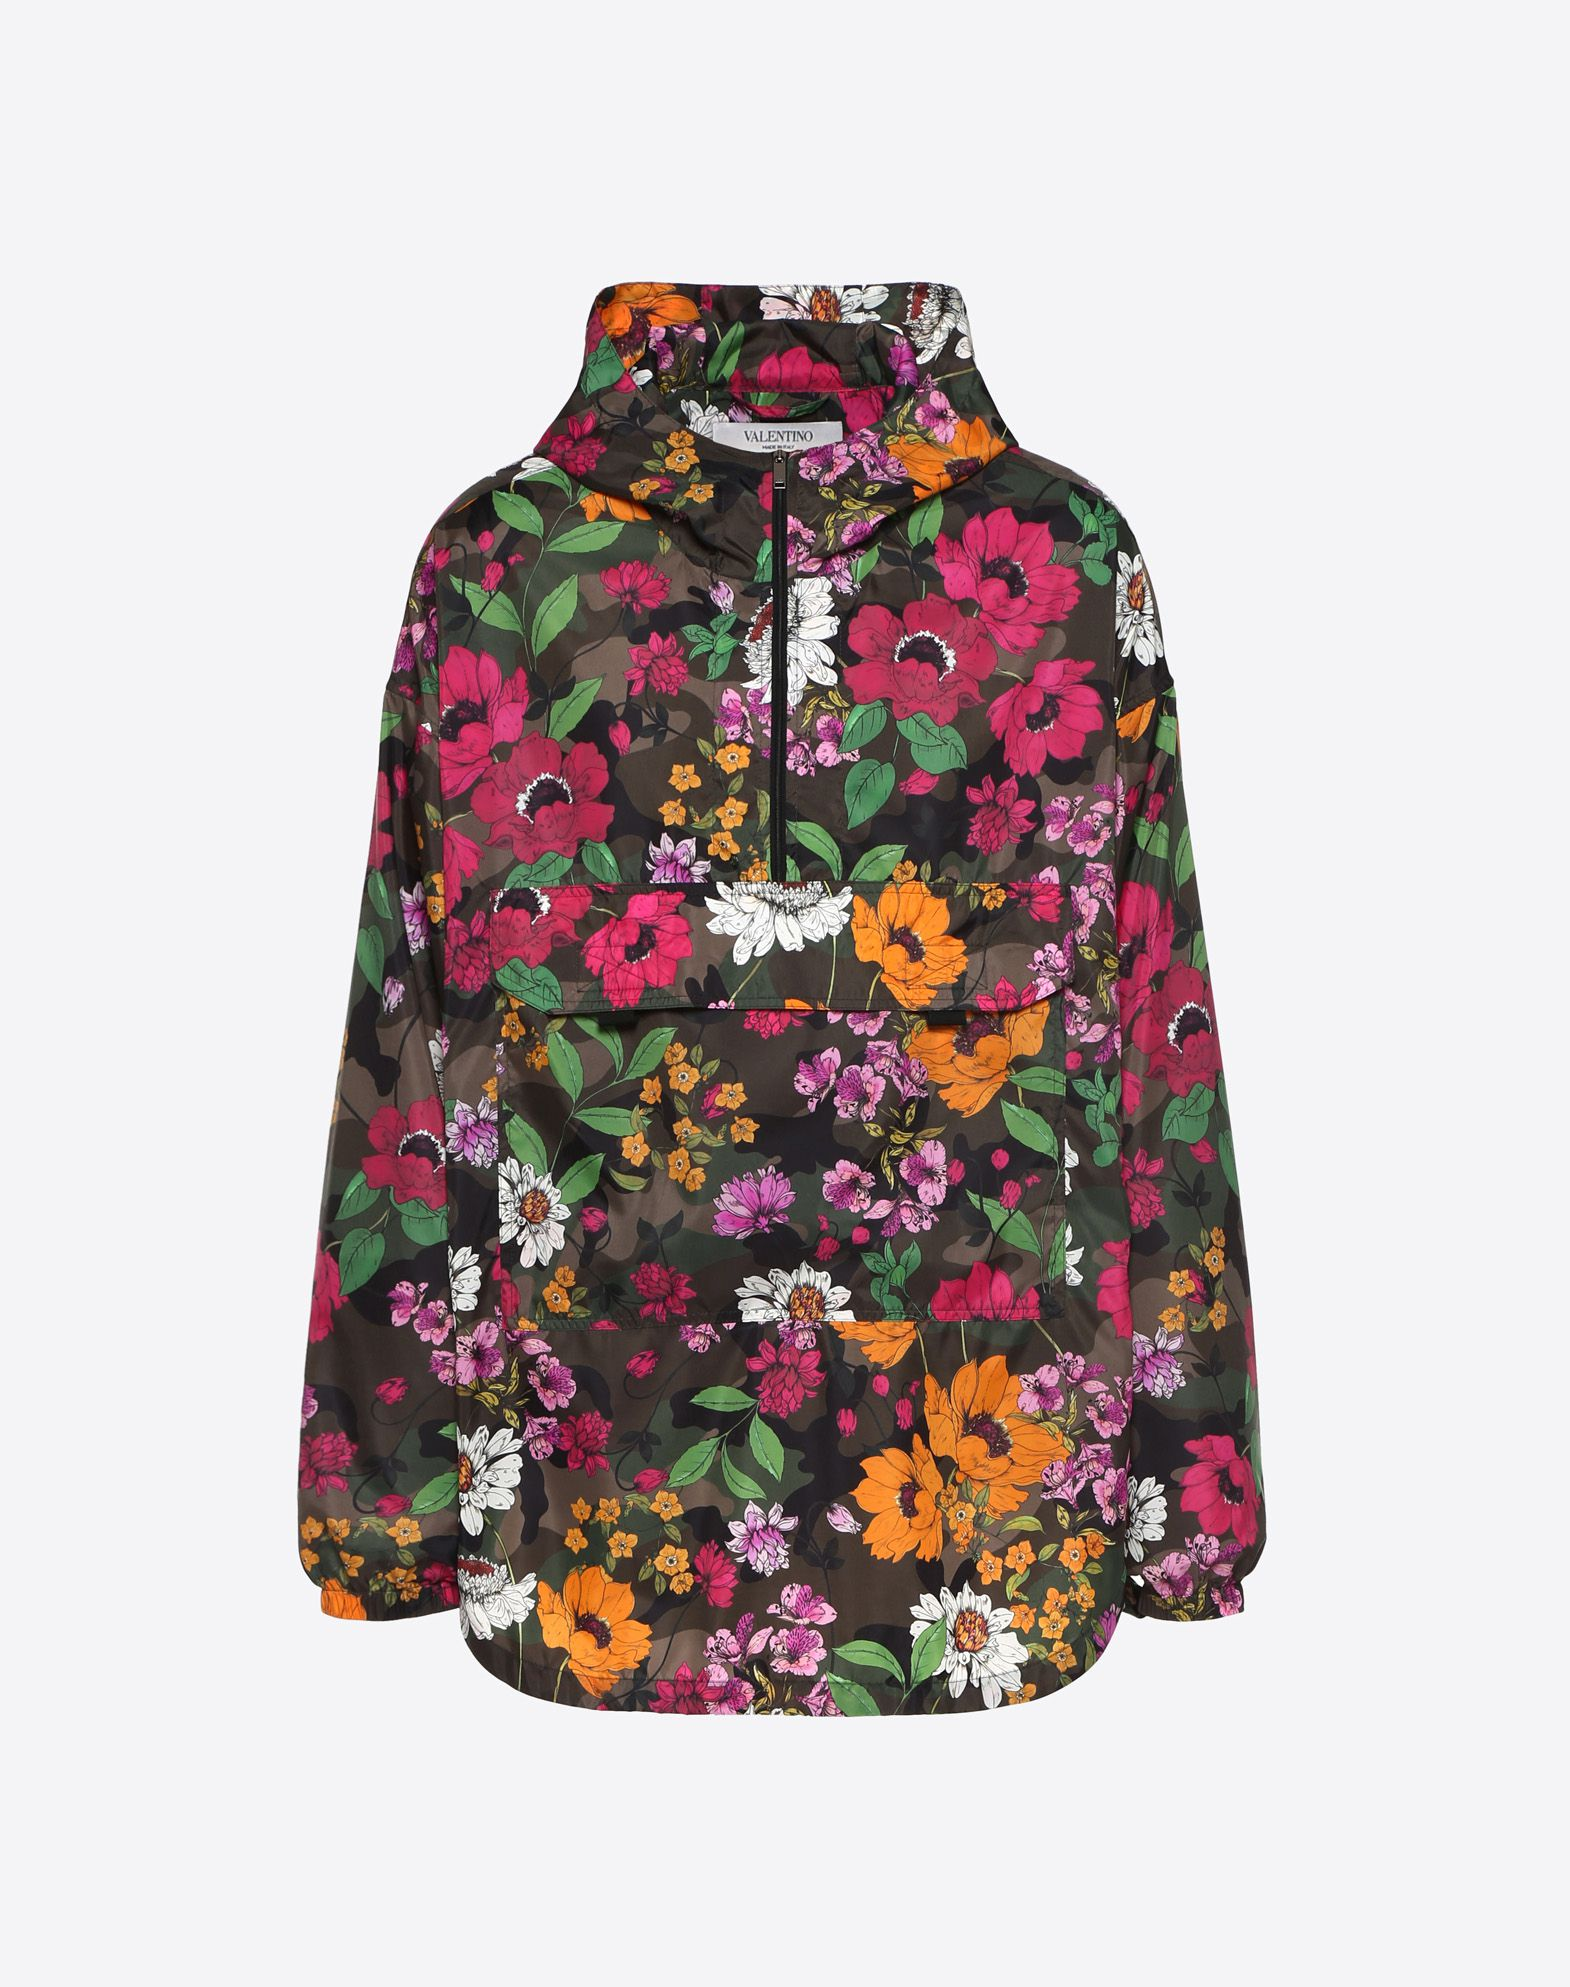 ANORAK WITH DEW CAMOU PRINT